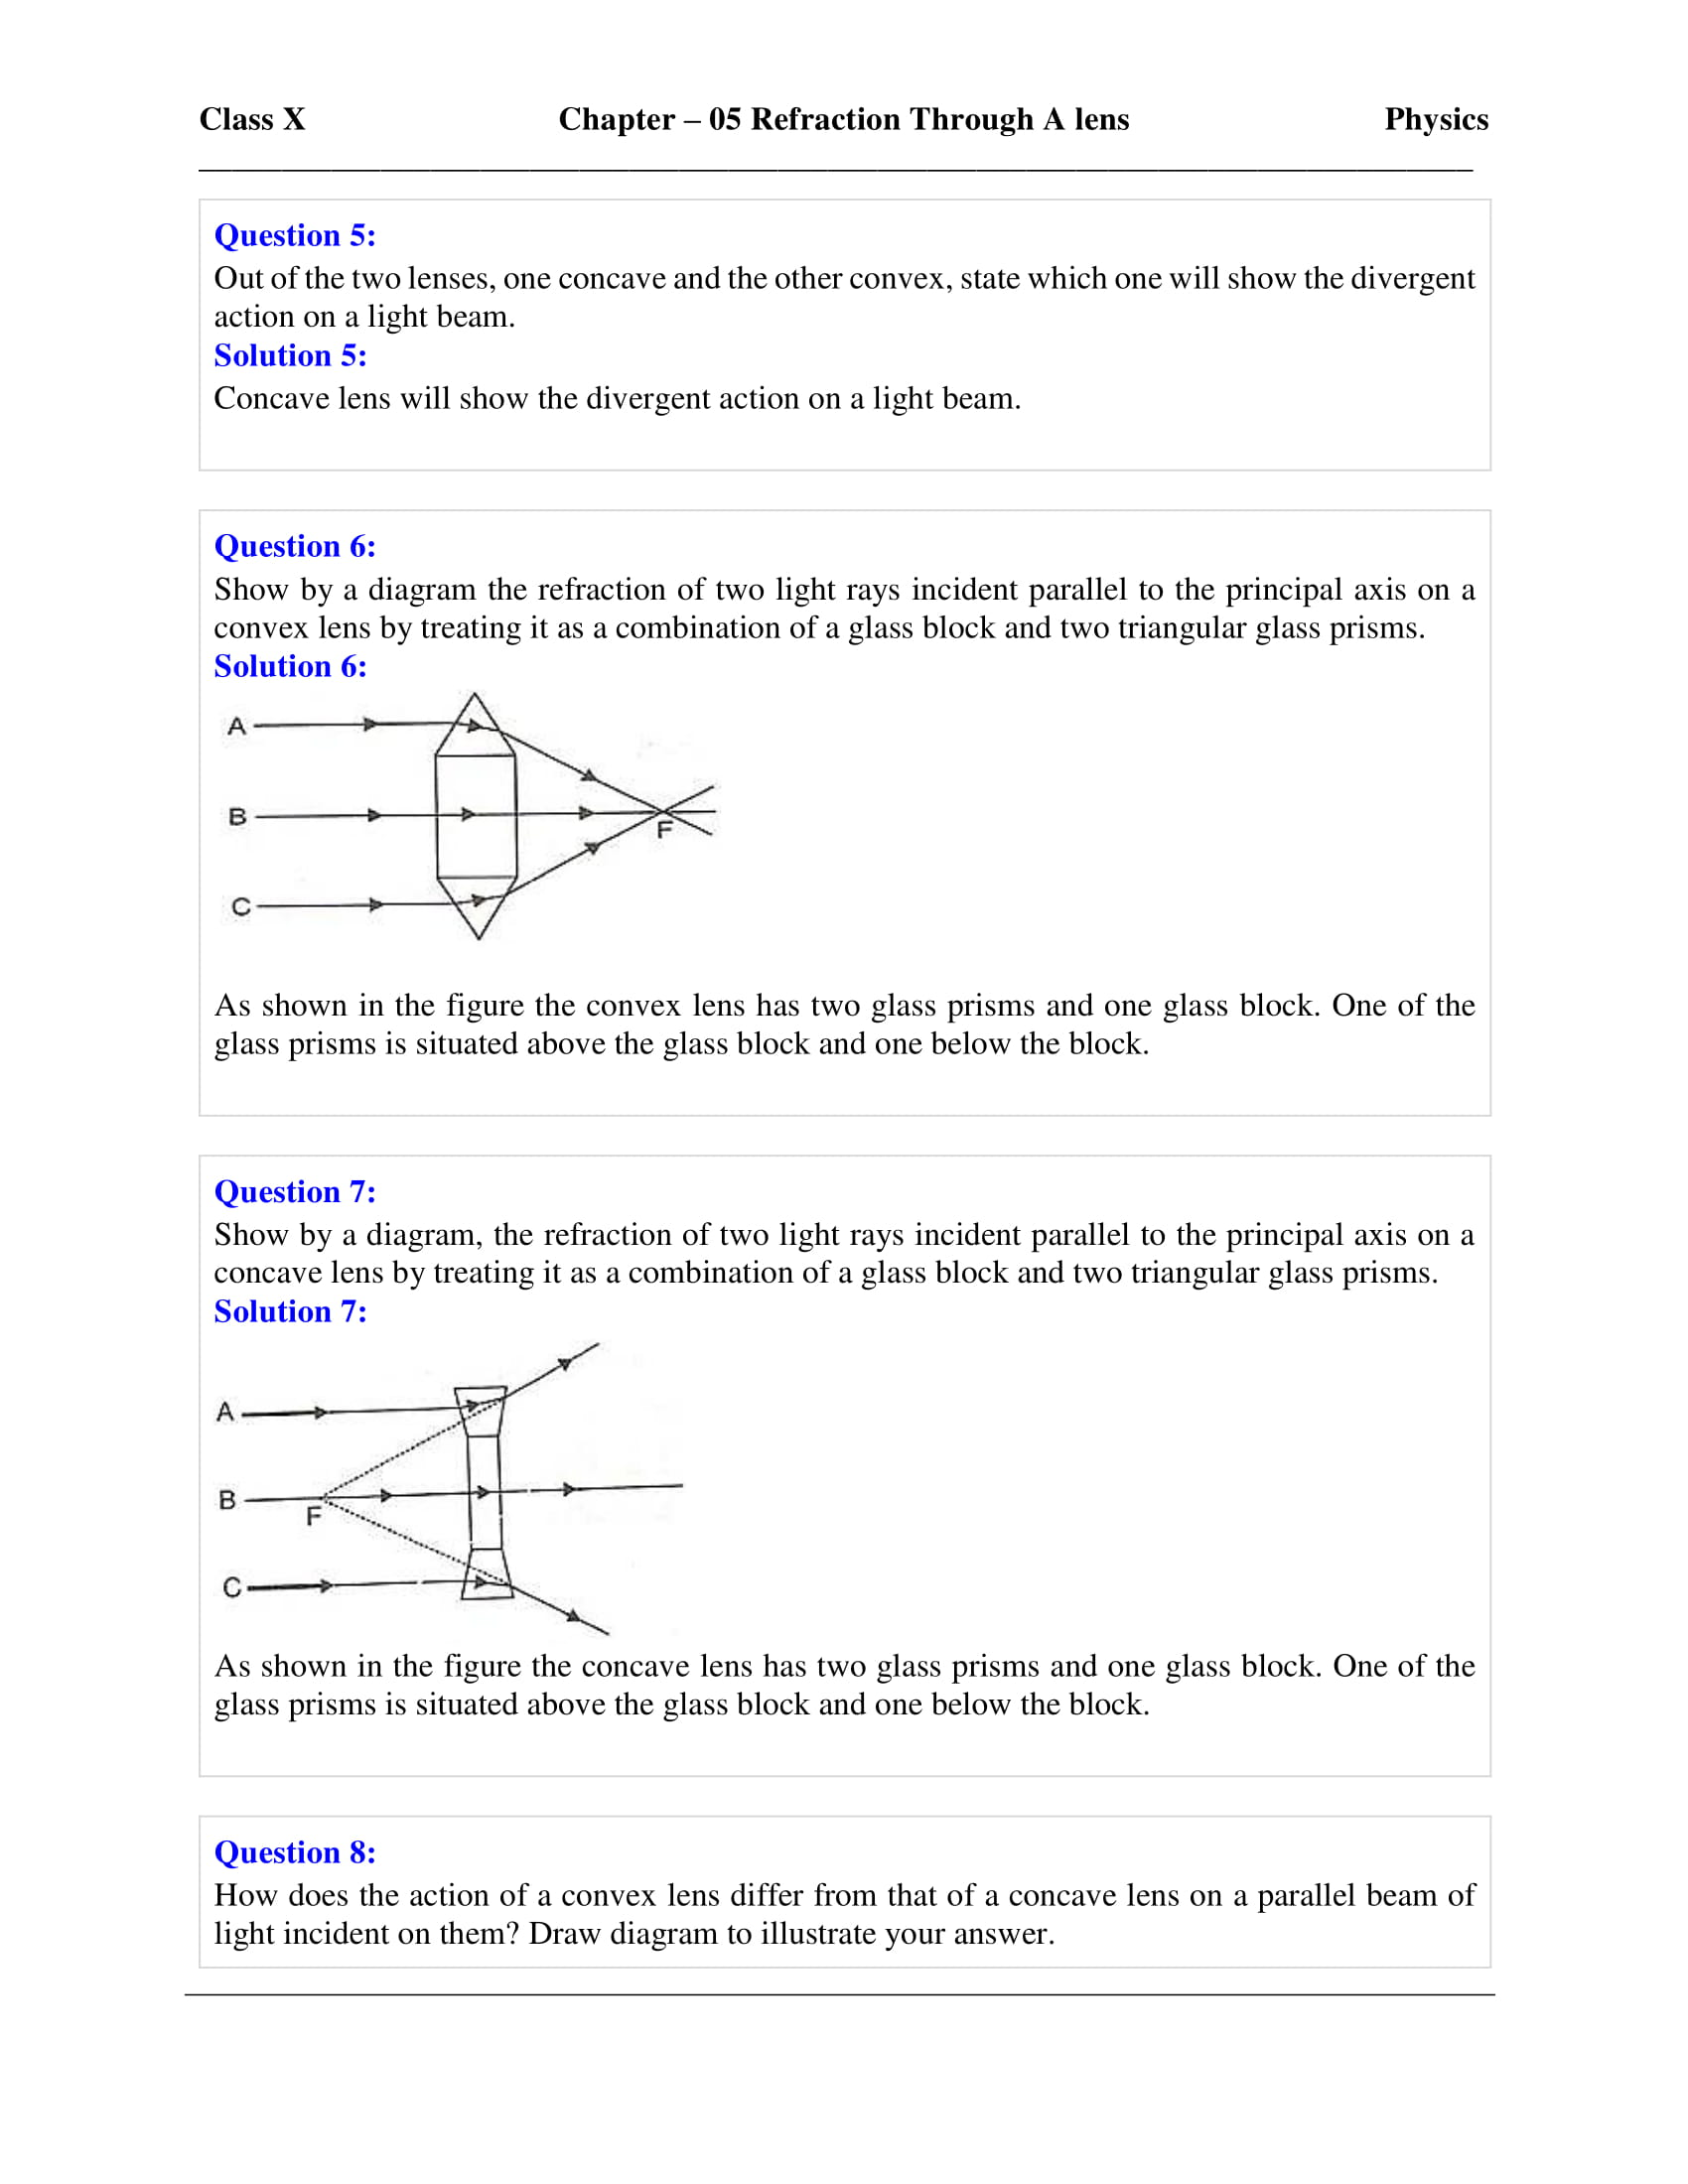 icse-selina-physics-solutions-class-10-chapter-5-refraction-through-a-lens-02